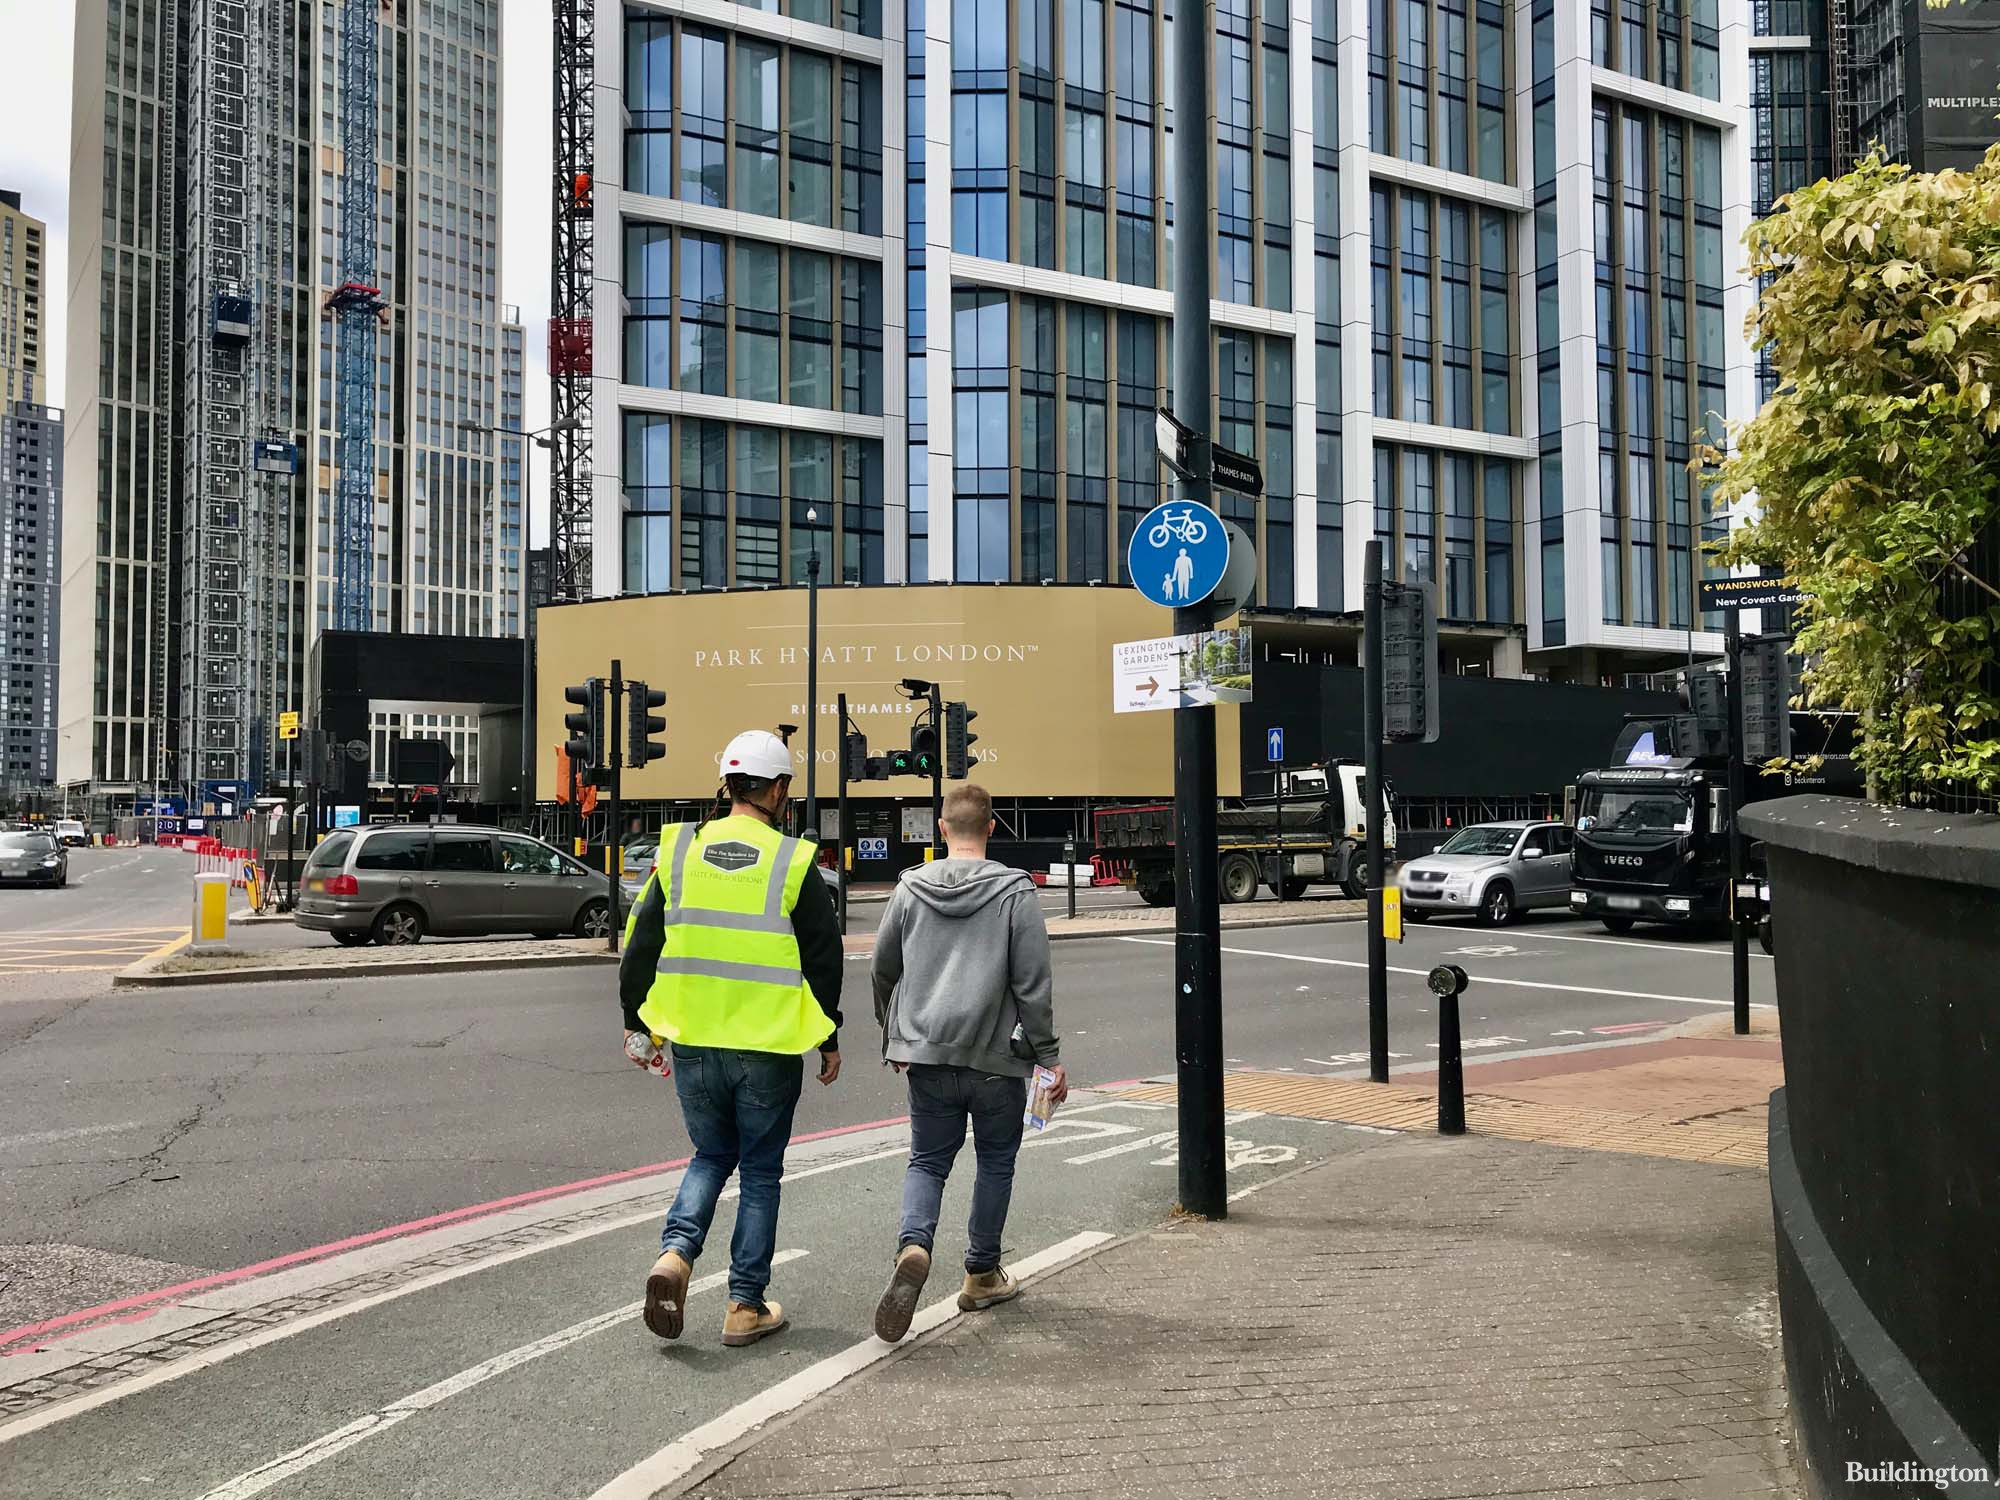 203-room Park Hyatt London River Thames in One Thames City development is expected to open in 2022.